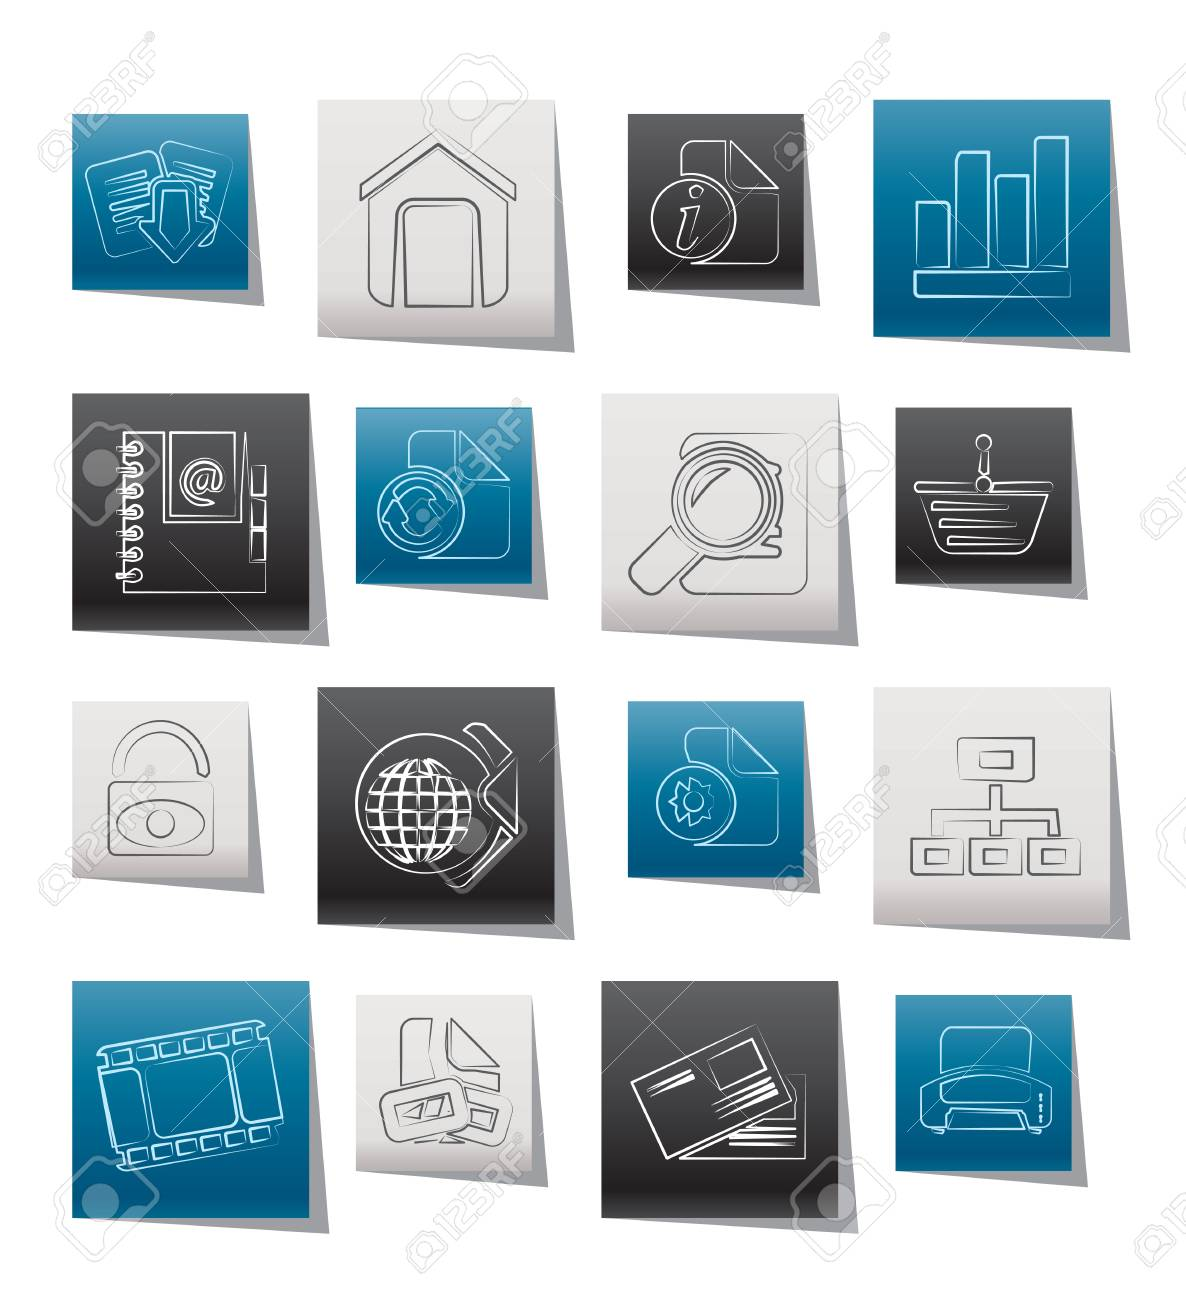 Web Site and Internet icons Stock Vector - 12006984